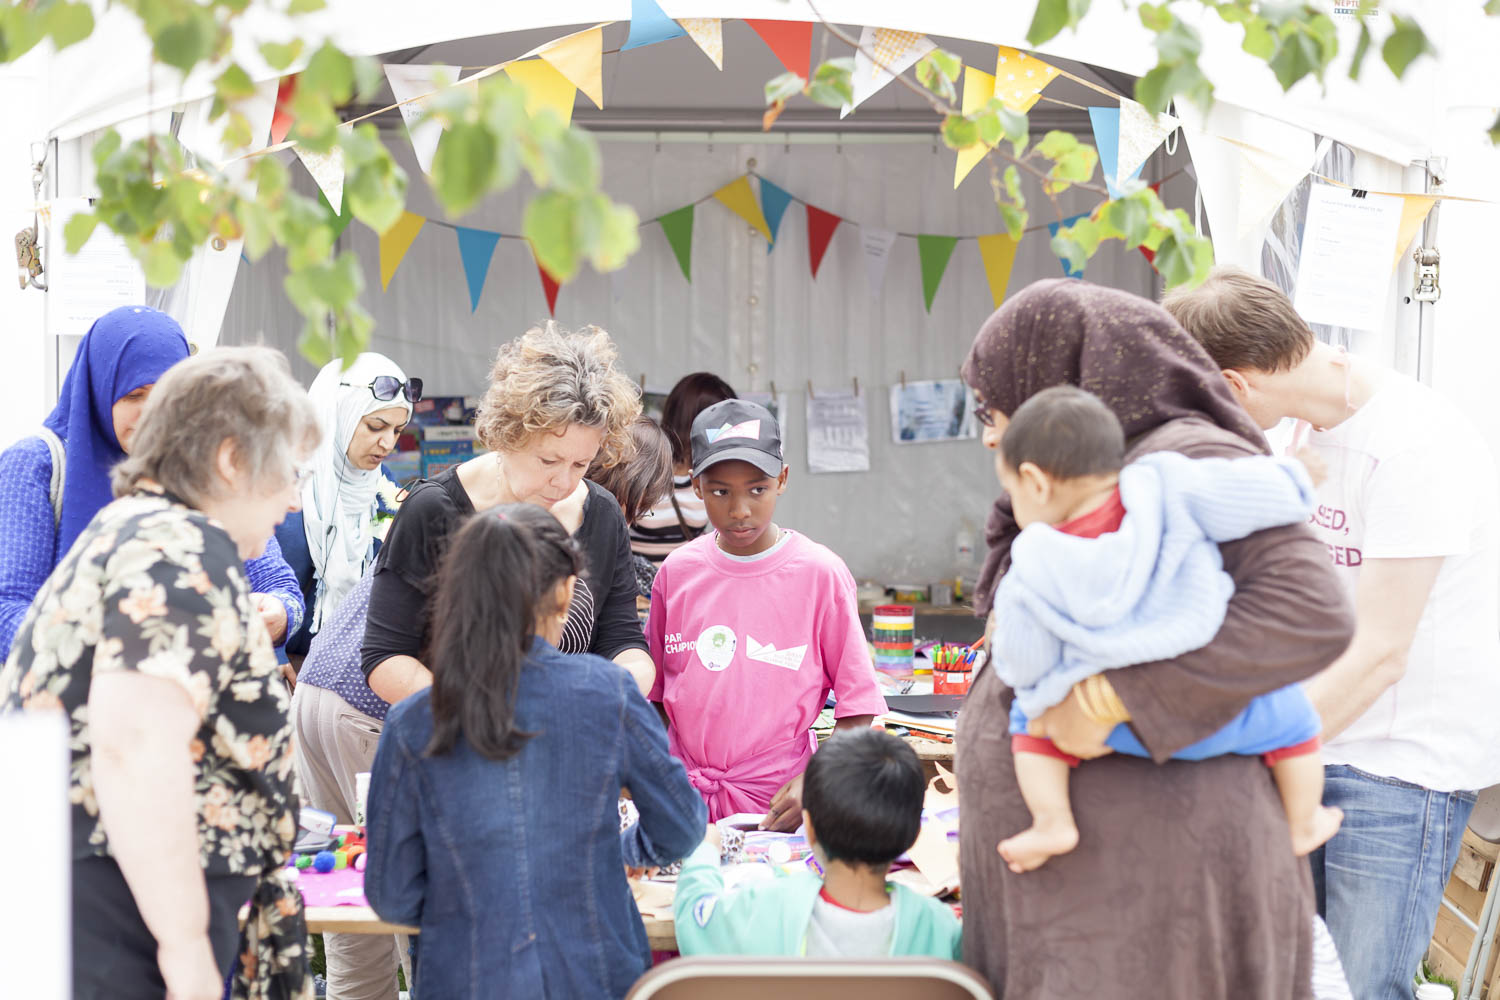 Families taking part in an activity at a festival stall